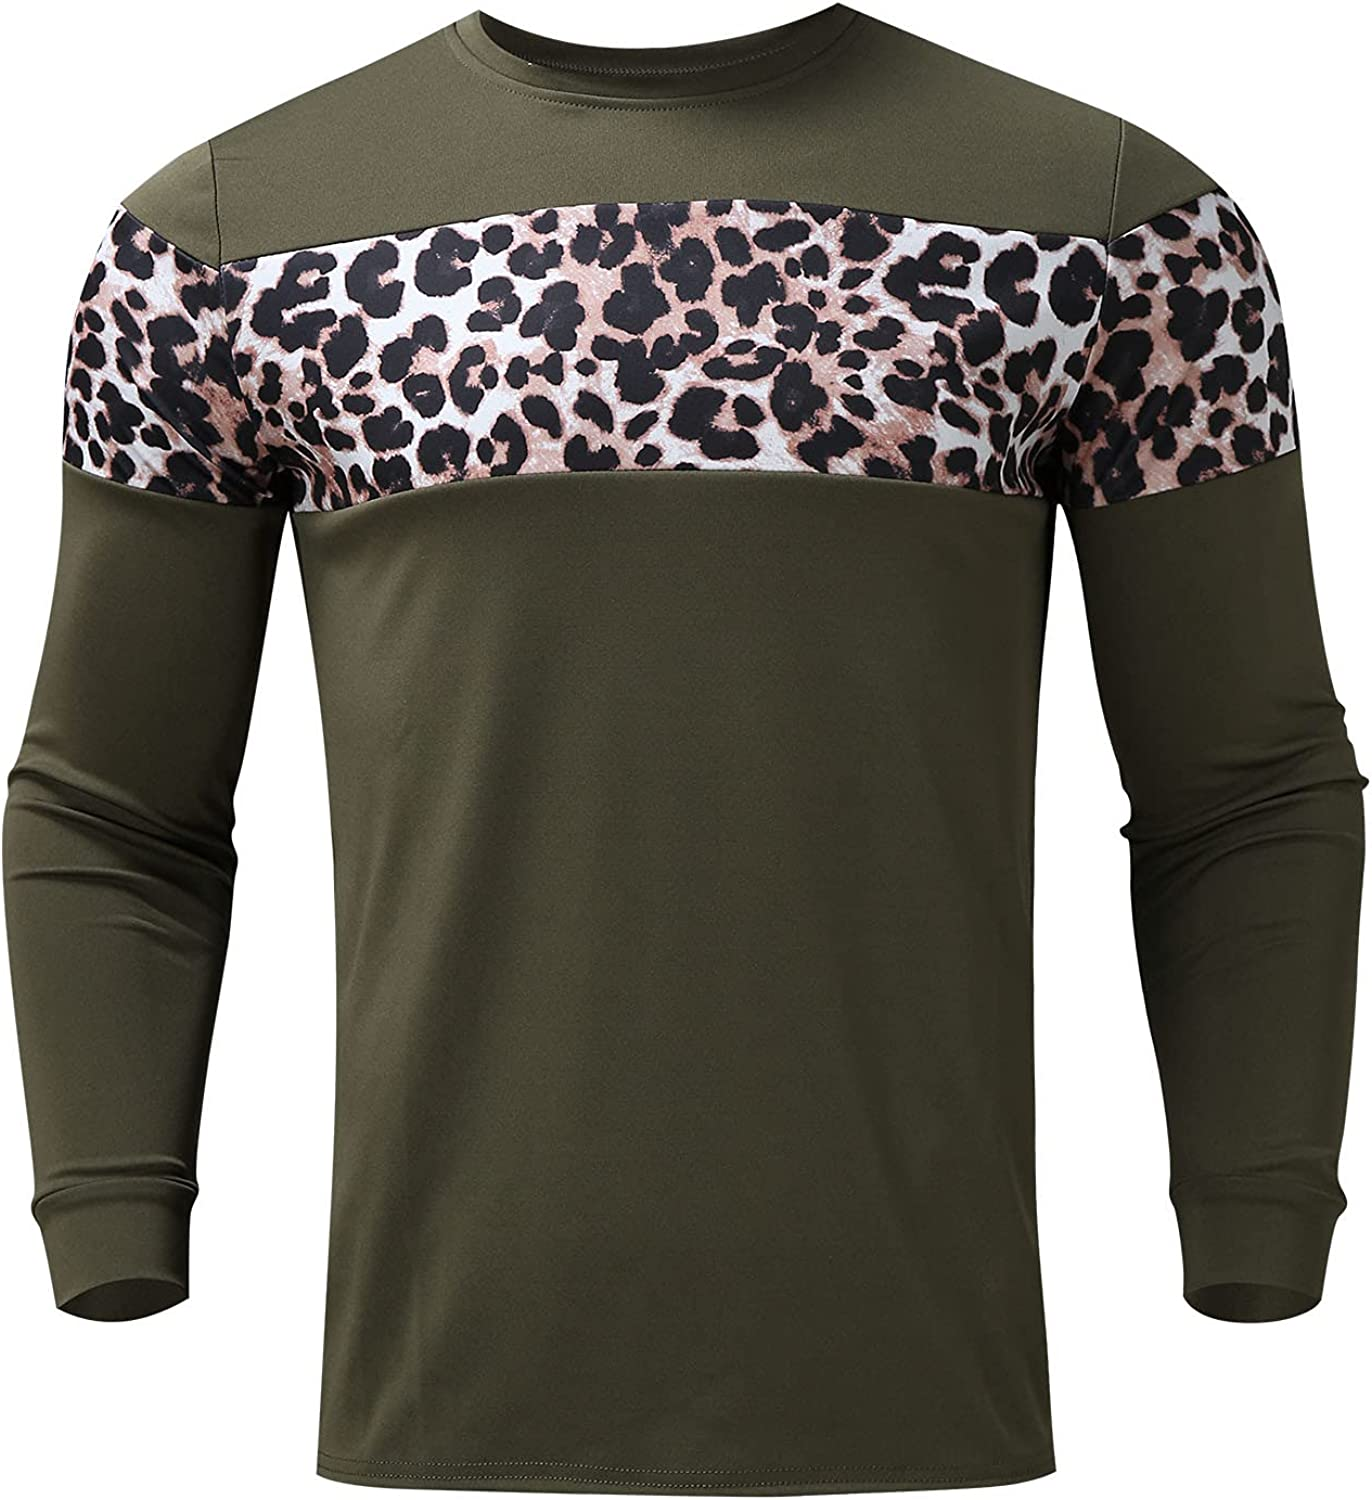 free shipping Tops for Men Leopard lowest price Stitching Printed Fashio Long O Sleeve Neck